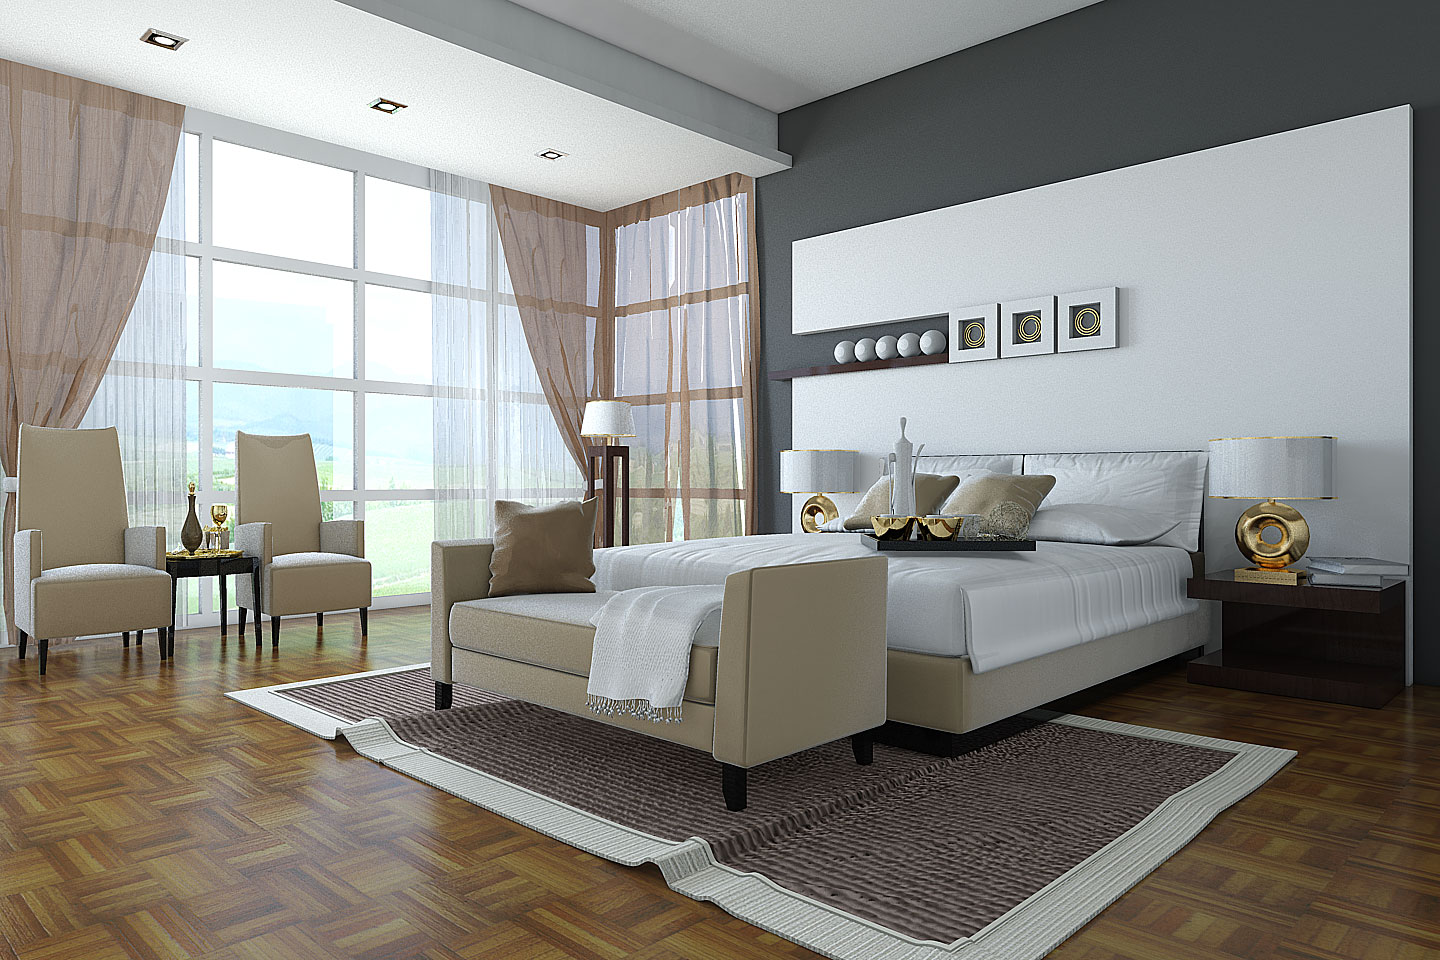 Charmant Classic Bedroom Design